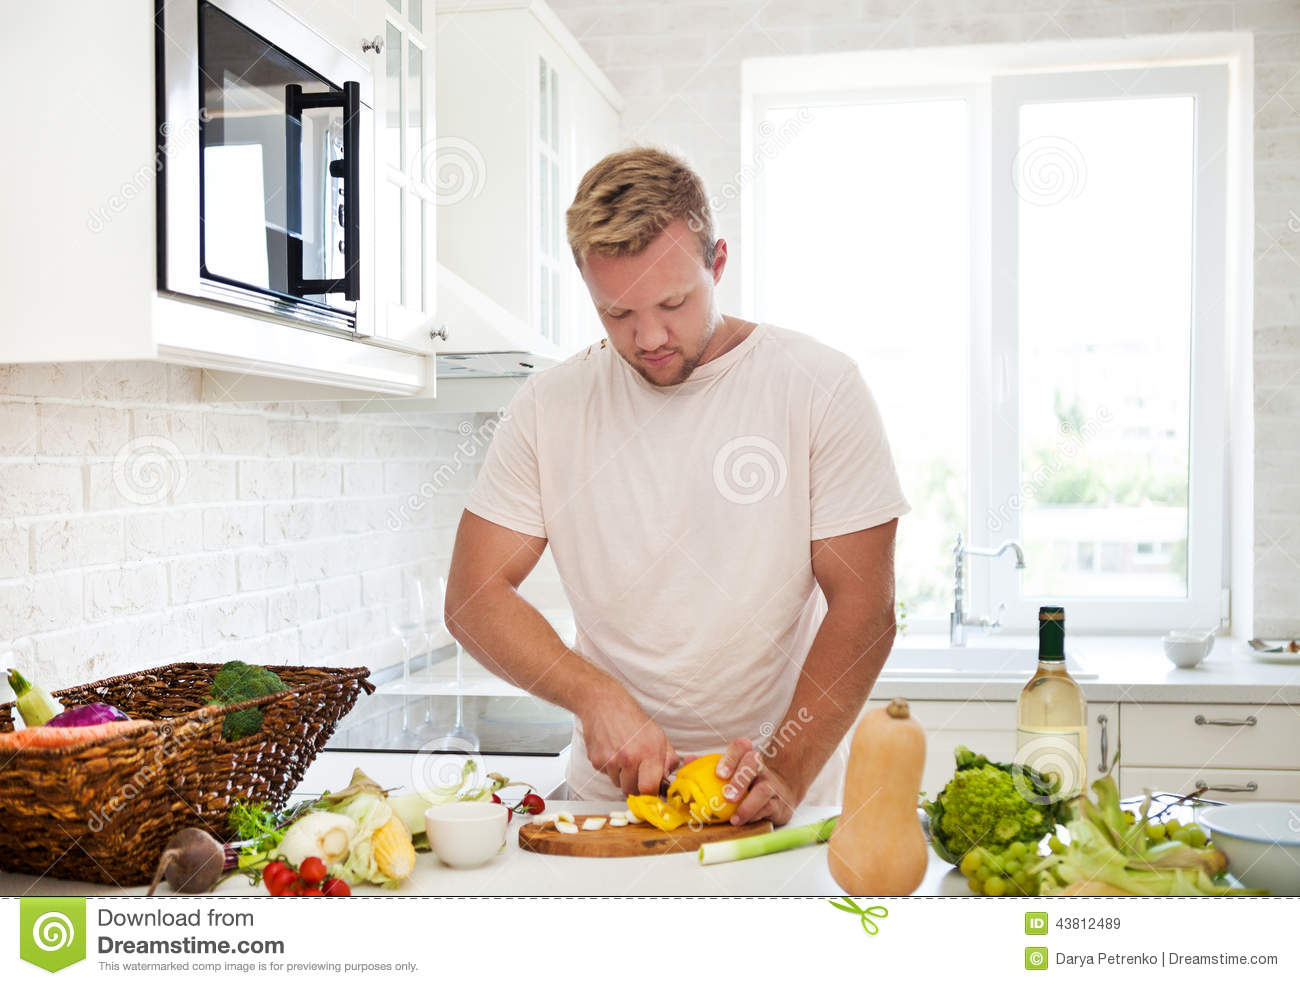 Man Cooking At Home Preparing Salad In Kitchen Stock Photo ...